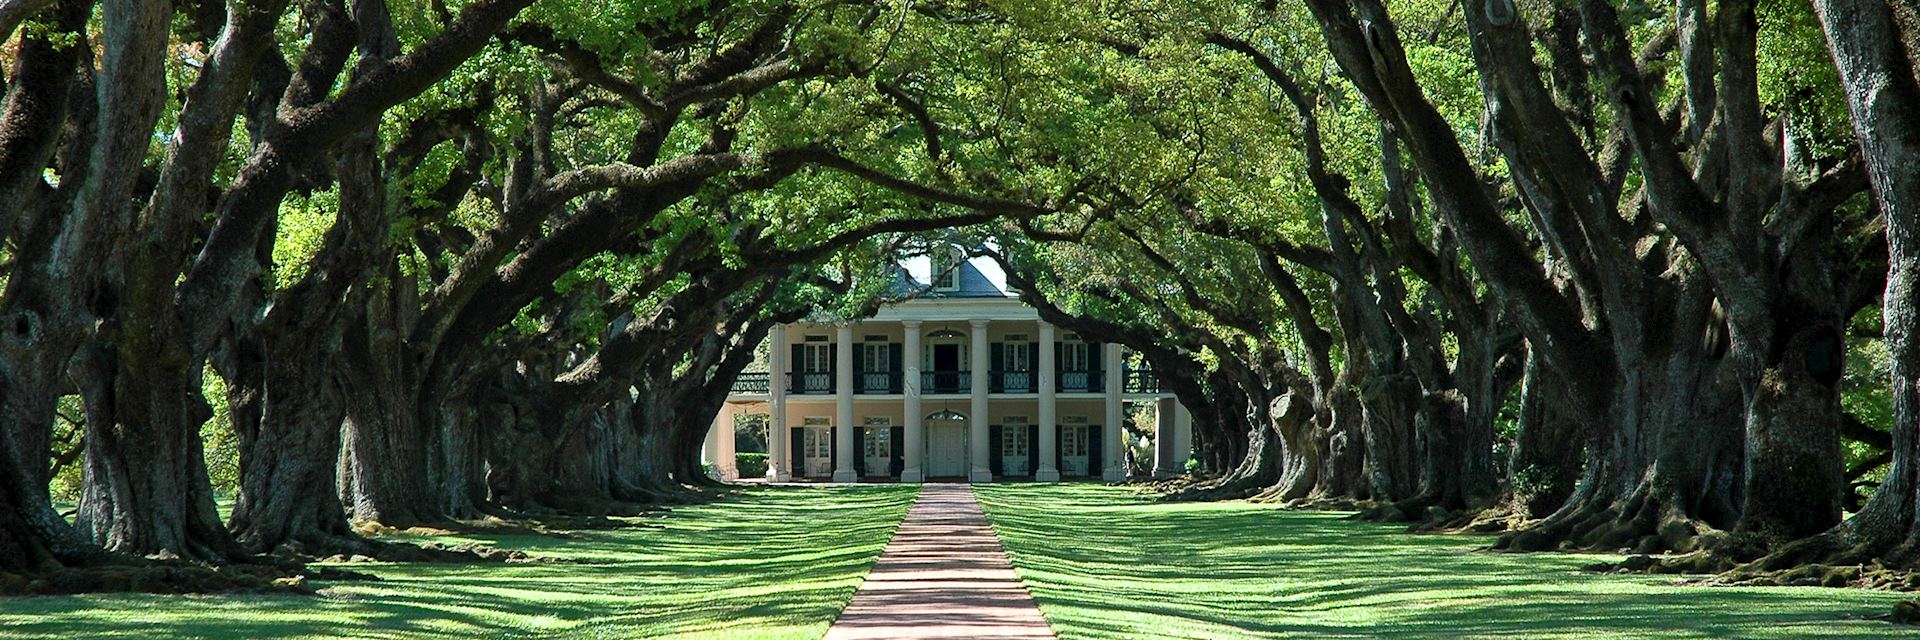 Louisiana plantation house